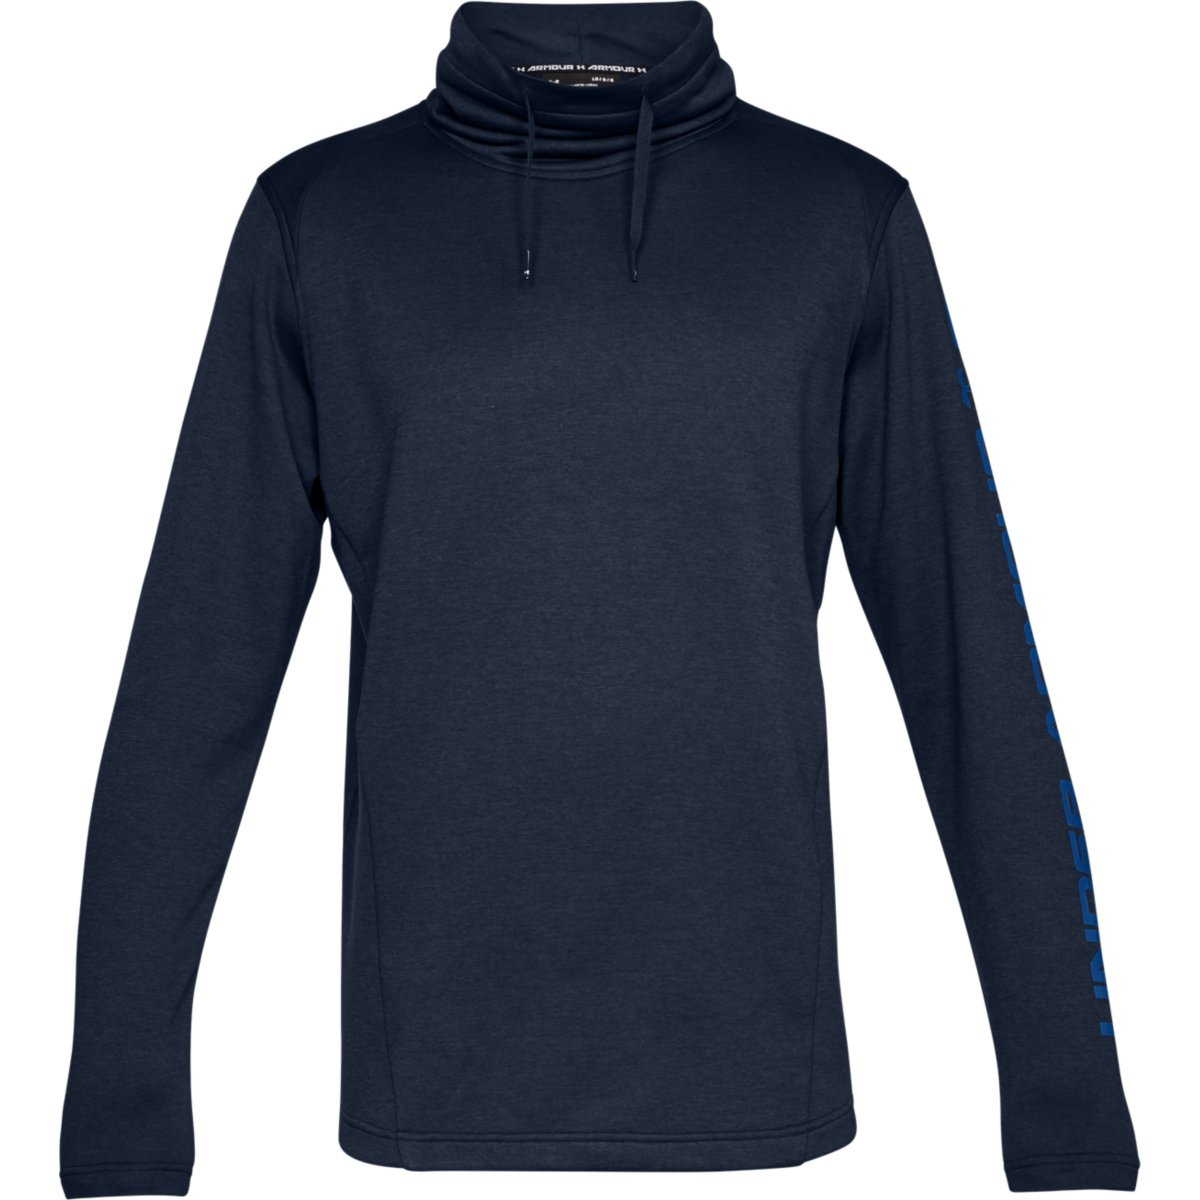 Under Armour MK1 Terry Funnel Neck Gym Top | Jerseys